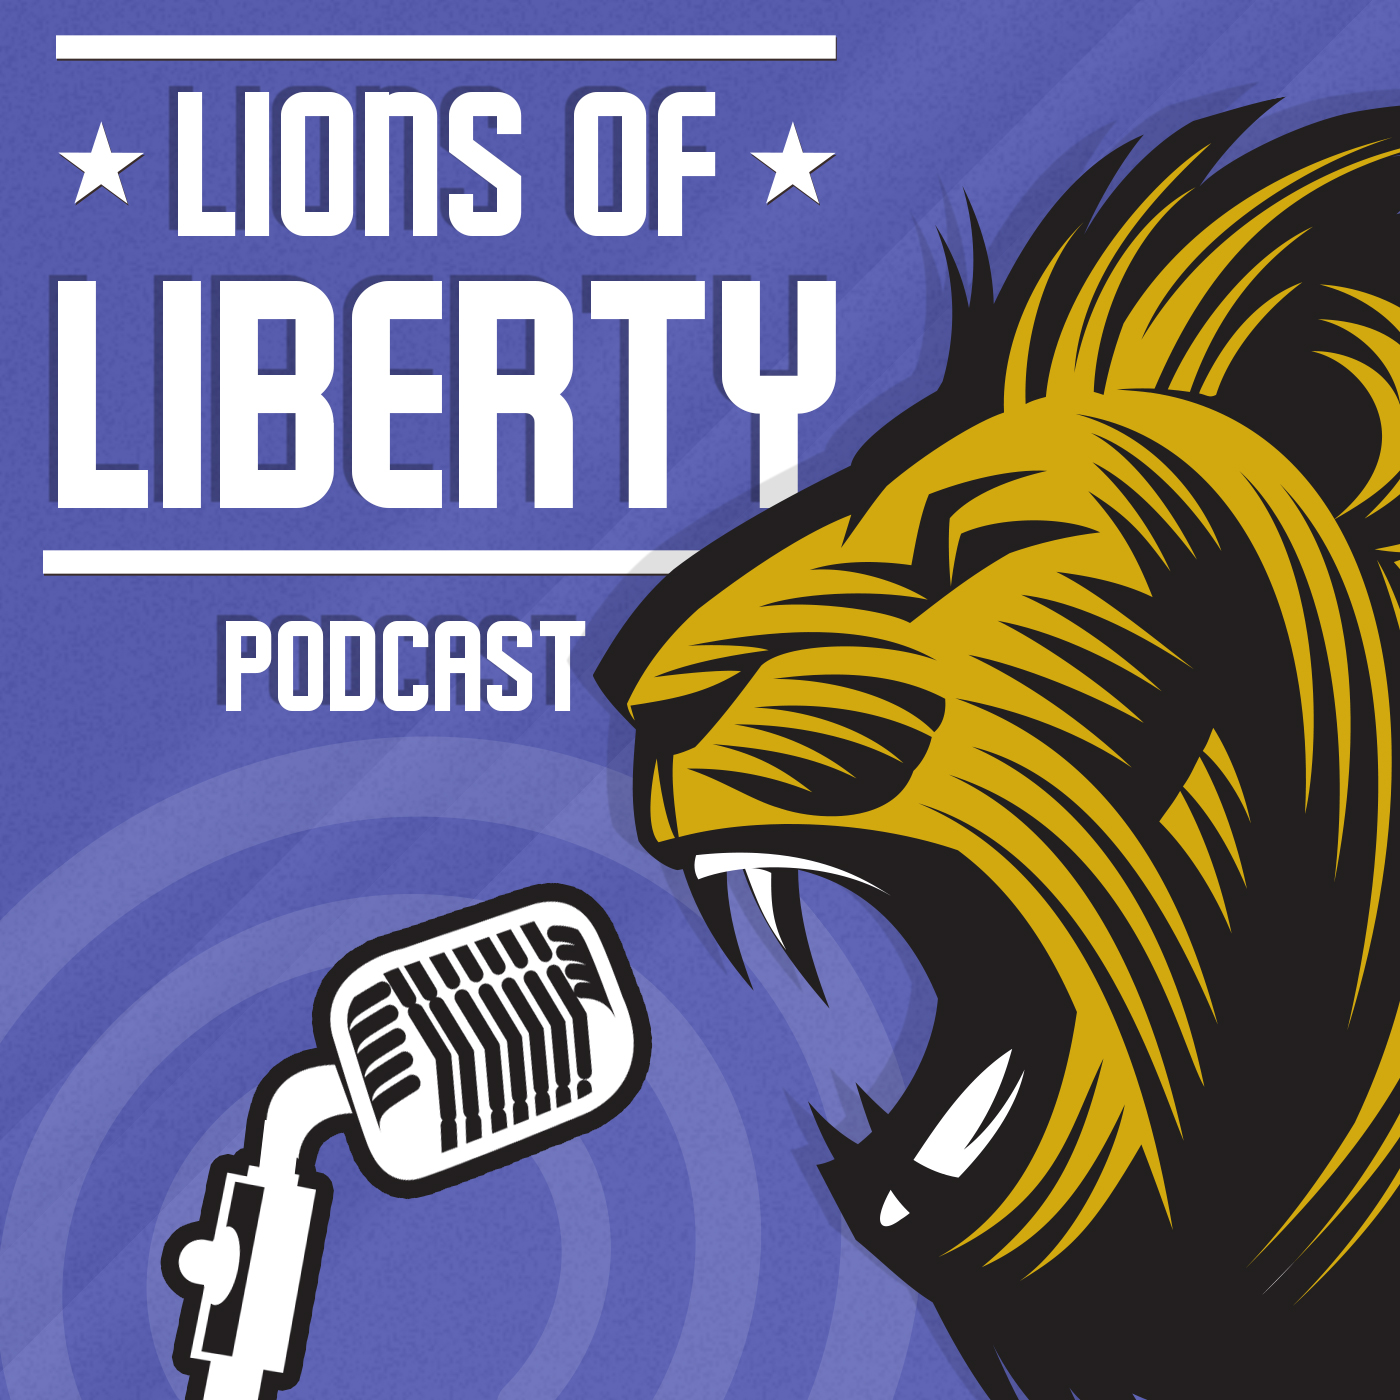 Lions of Liberty Podcast